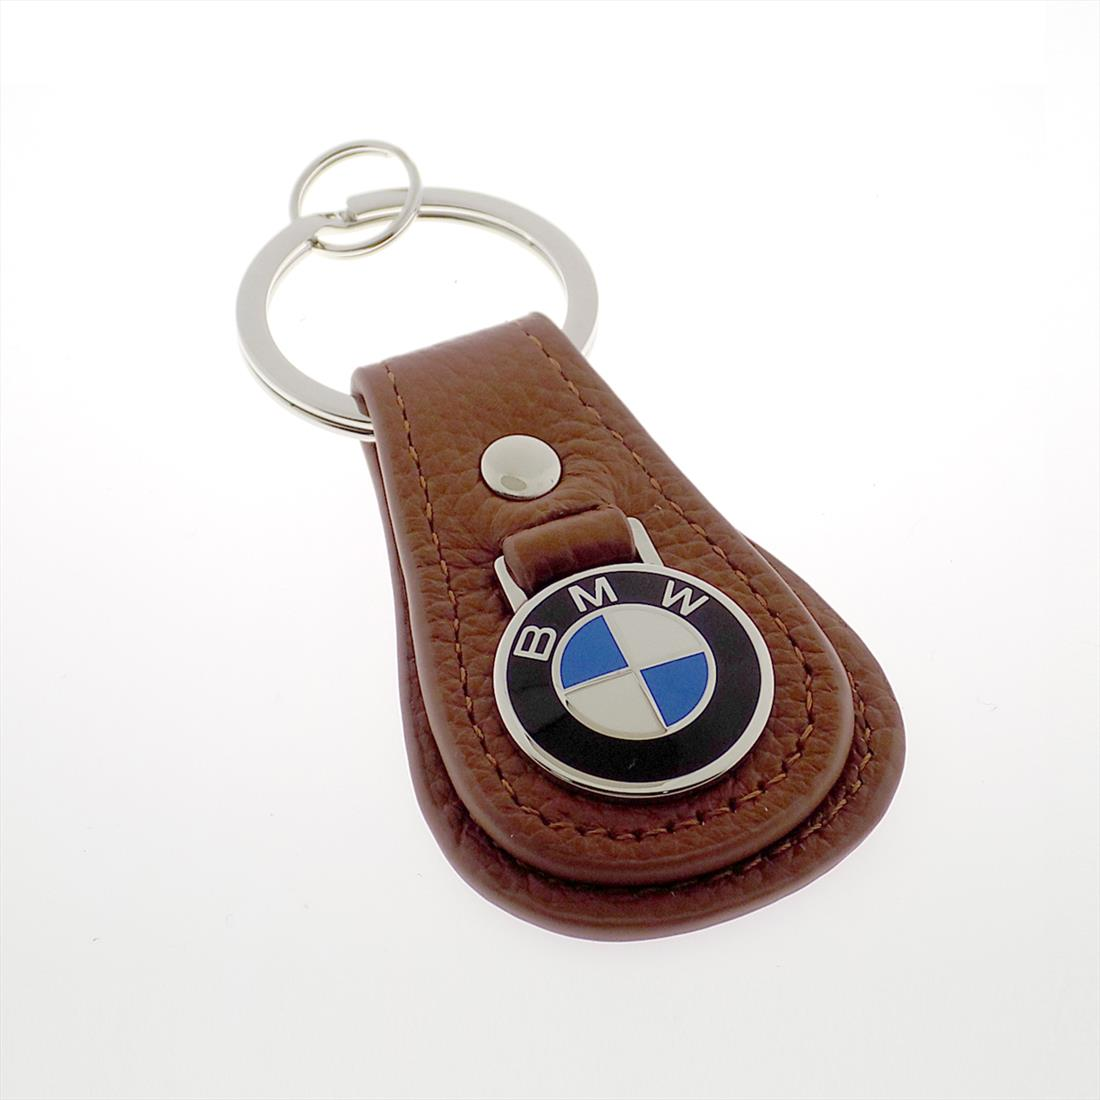 BMW Leather Teardrop Keychain